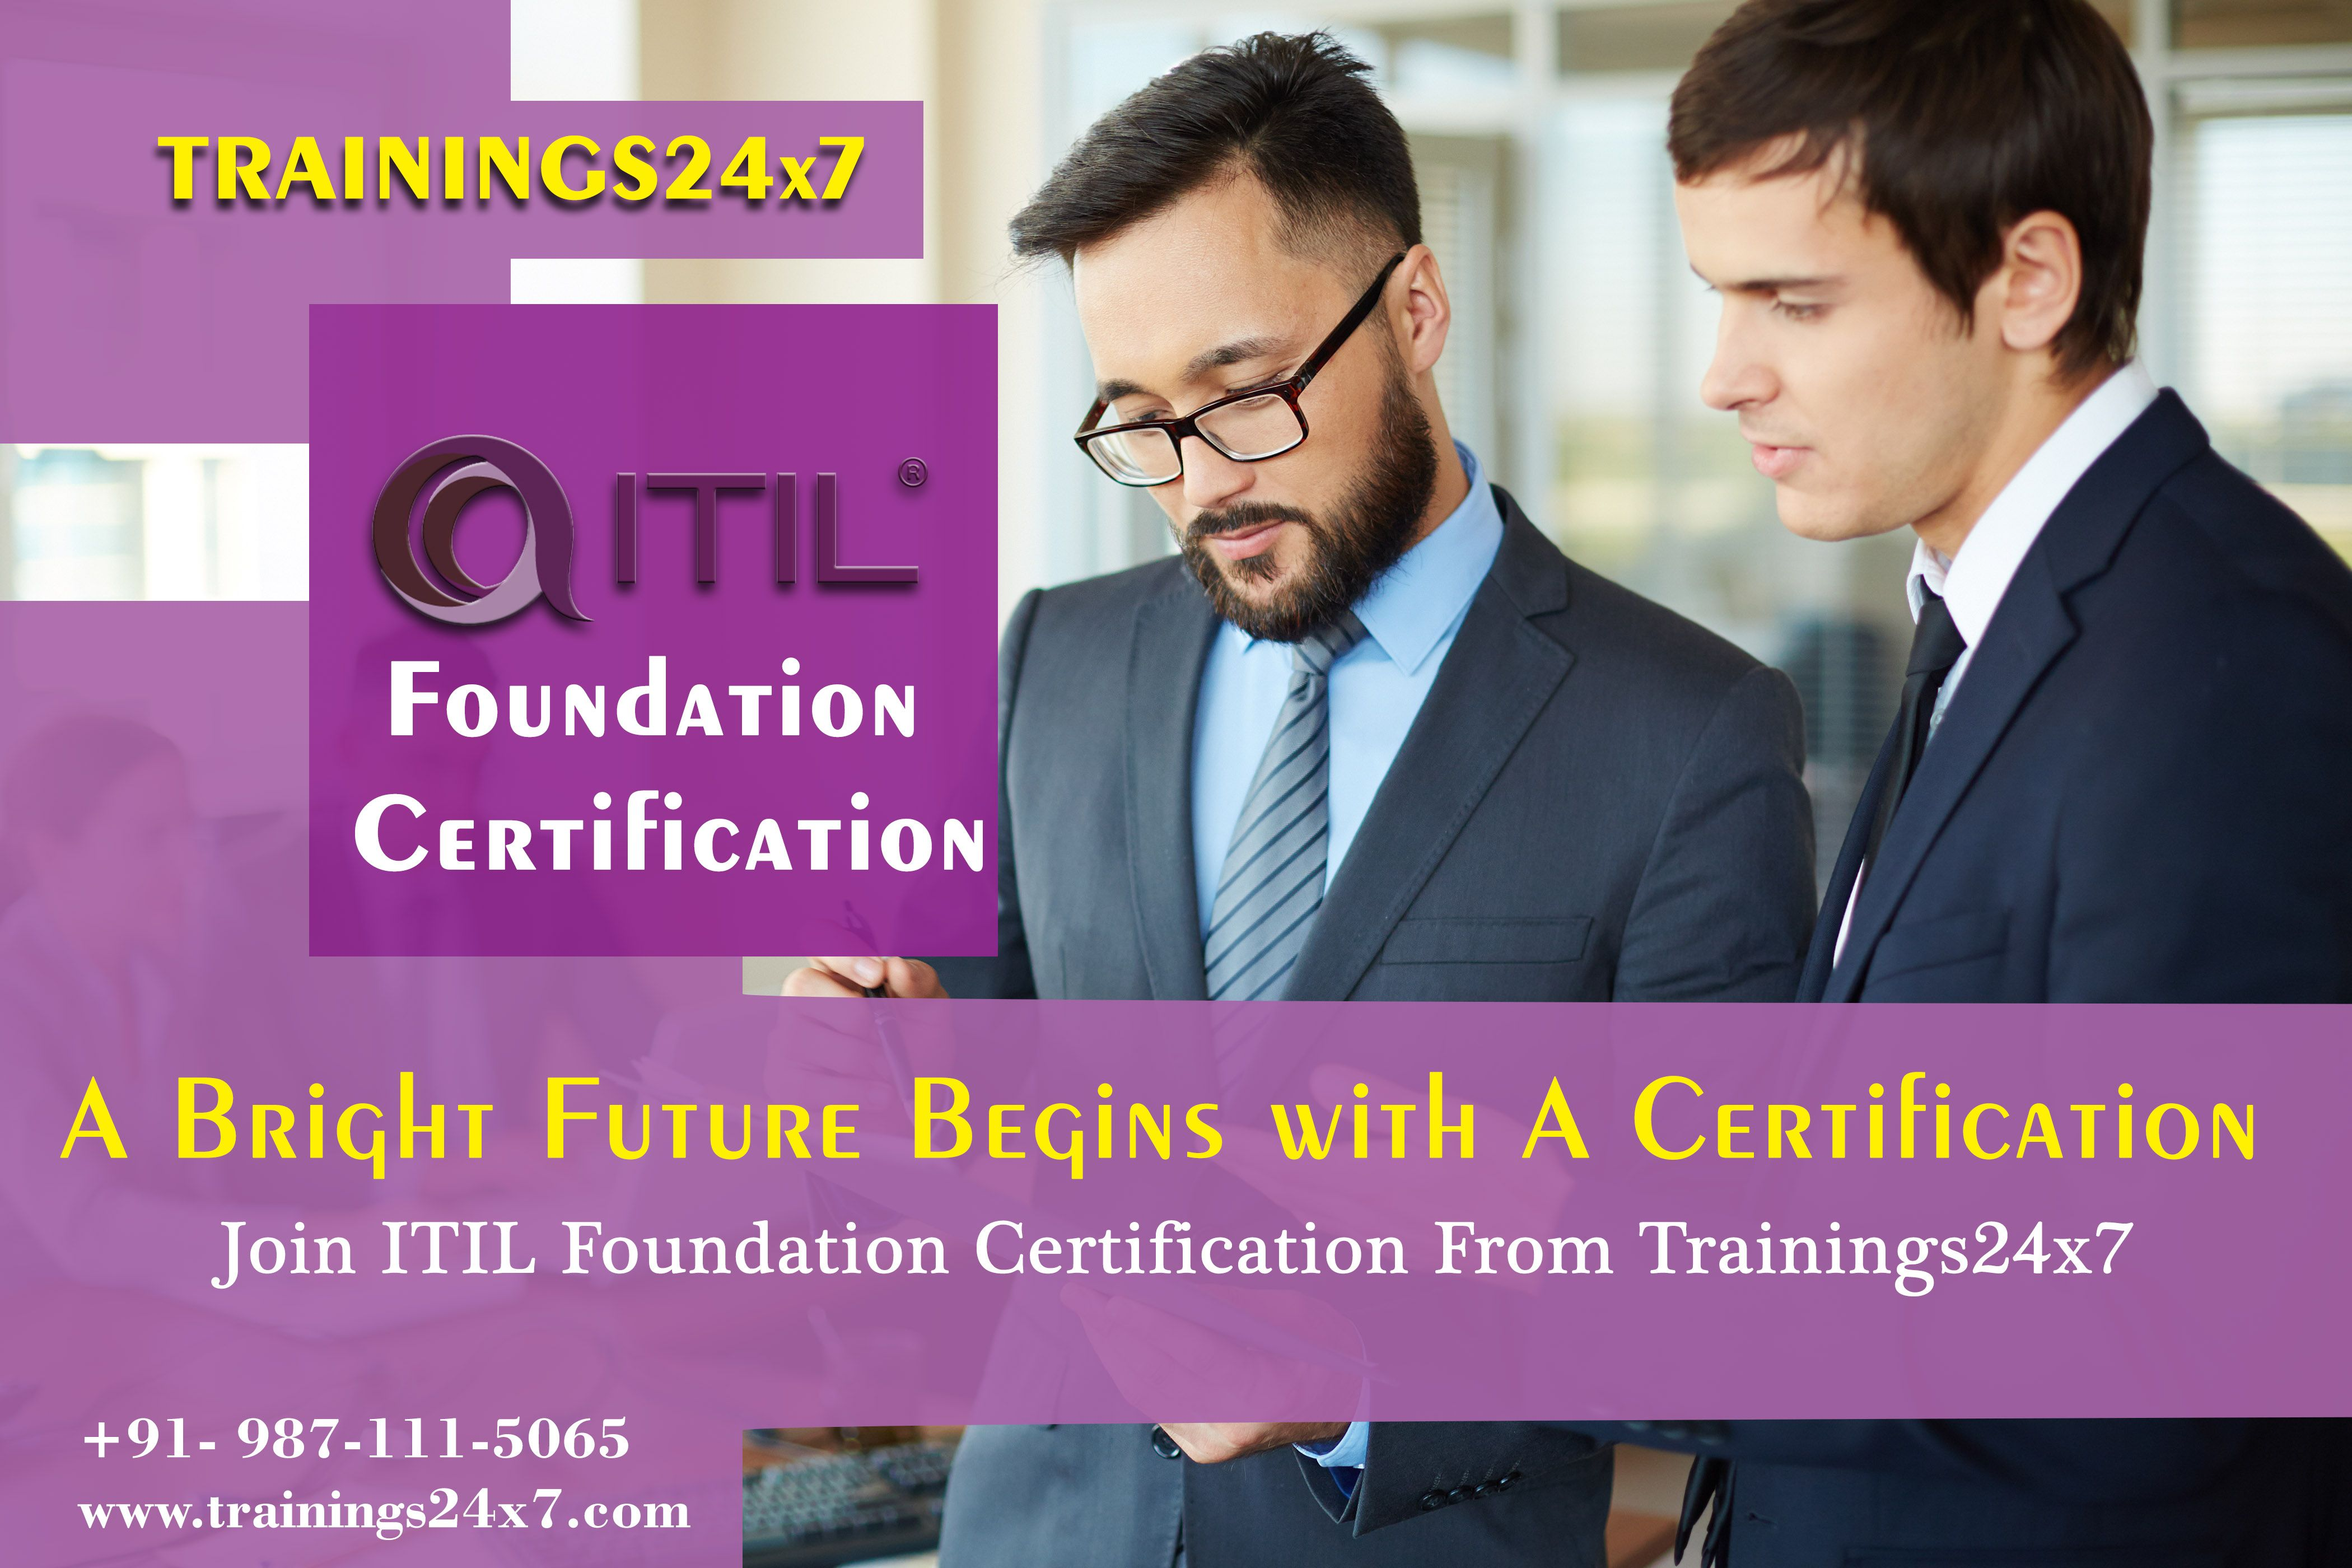 Itil training workshop learn to identify planning delivery and itil training workshop learn to identify planning delivery and support of it related services for your business itil foundation training by tr xflitez Choice Image